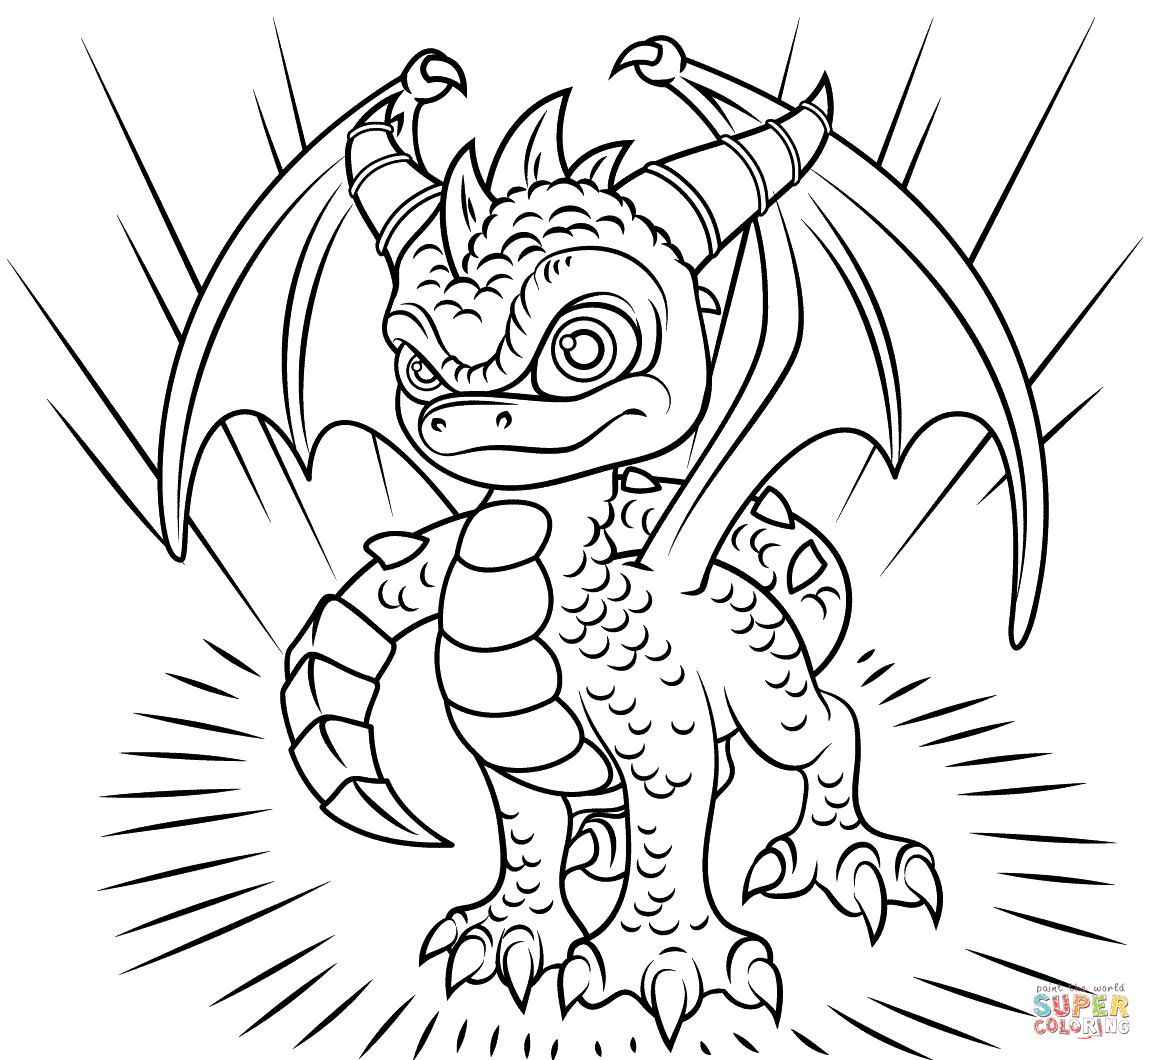 Printable Coloring Pages Skylanders Skylanders Spyro Coloring Page Free Printable Coloring Pages